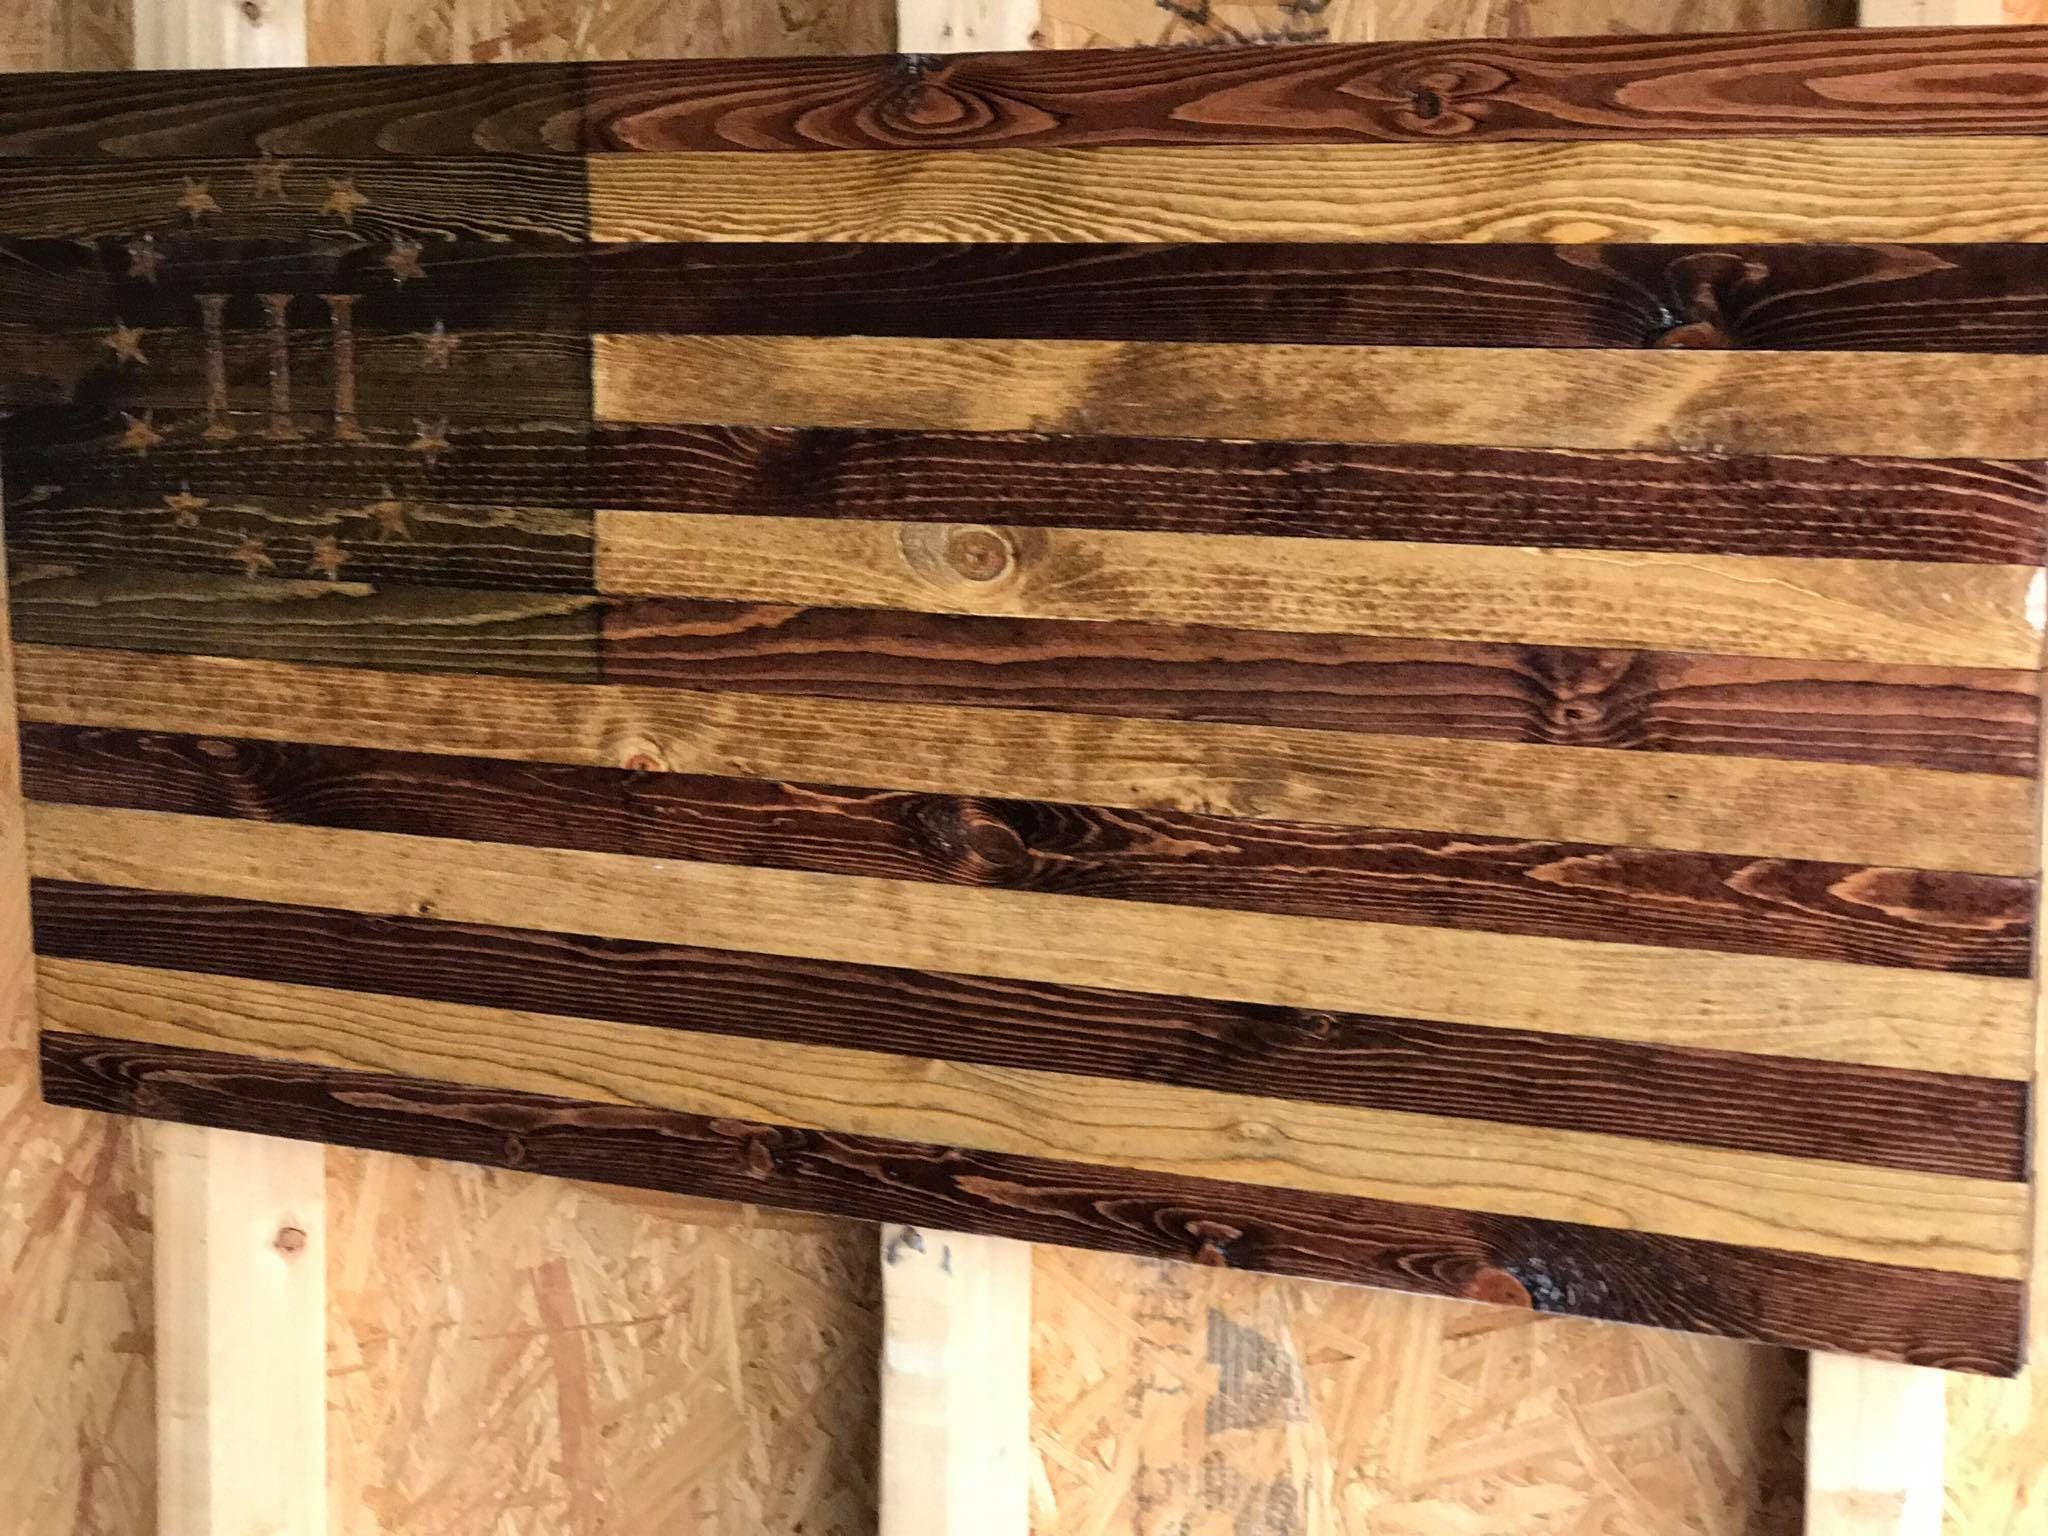 Wood American Flag Antique Style Rustic American Flag